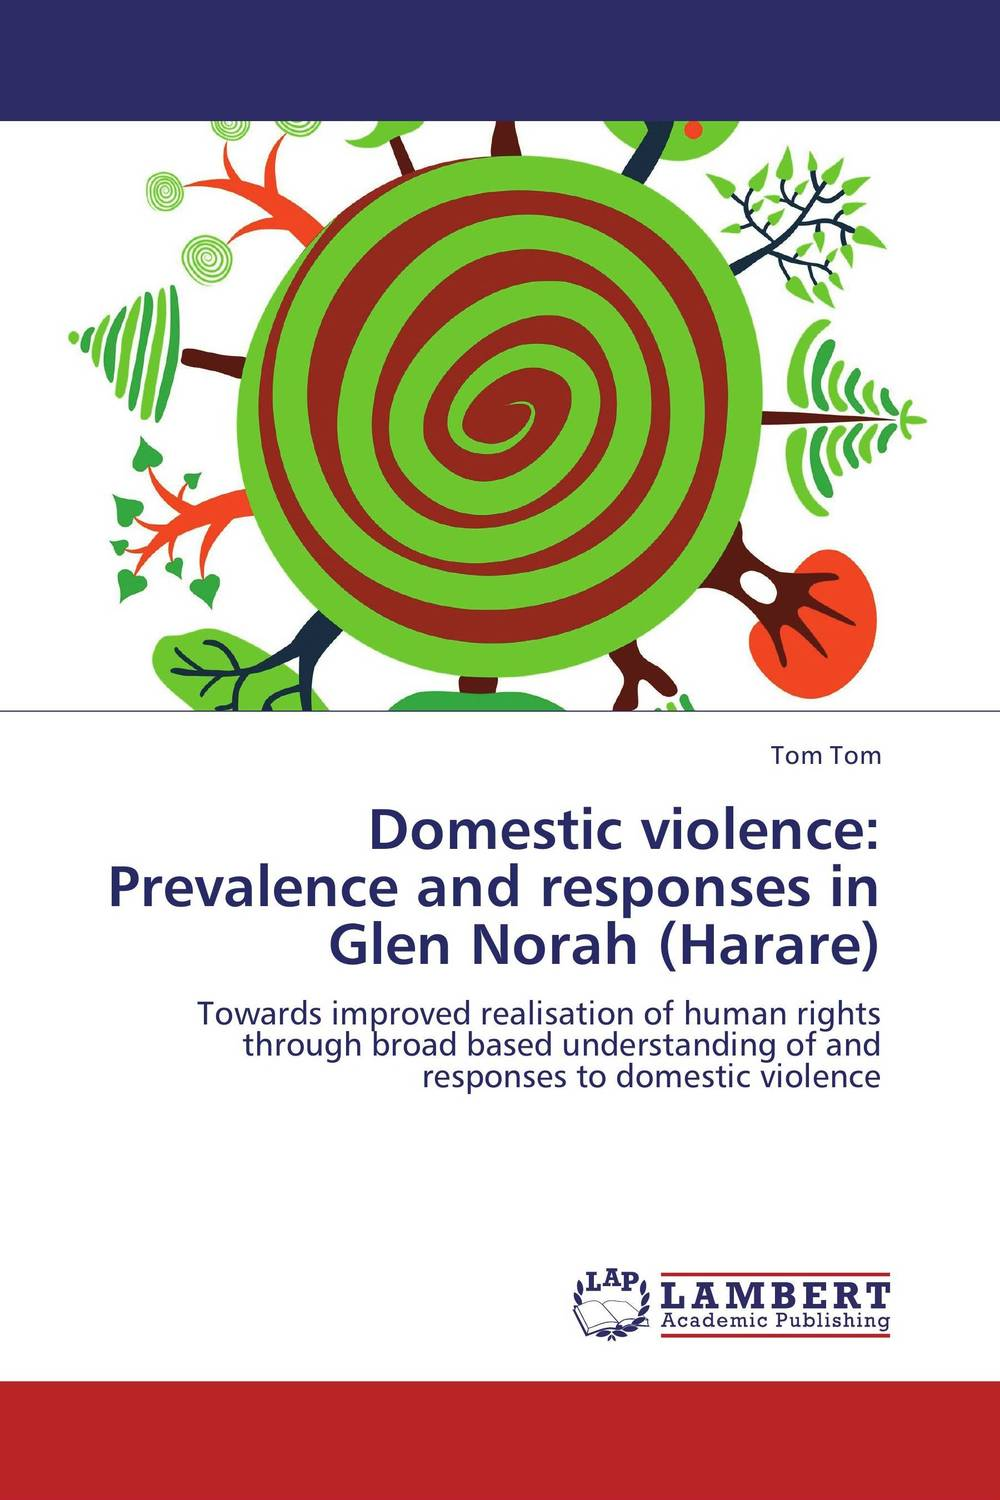 Domestic violence: Prevalence and responses in Glen Norah (Harare) aliou ayaba and lyhotely ndagijimana domestic worker vulnerability to violence and hiv infection